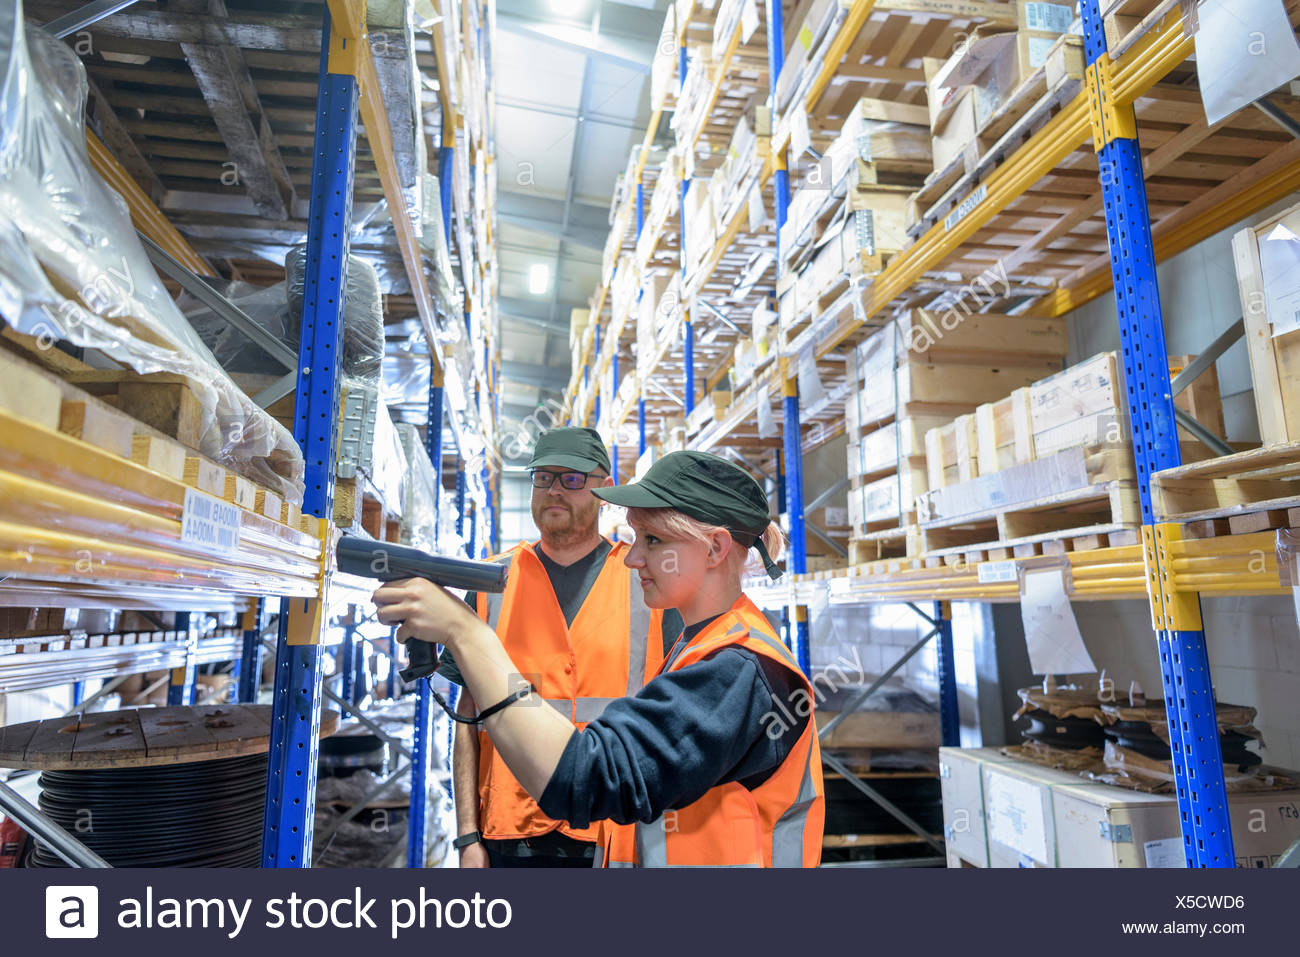 Storage workers scanning parts in train works warehouse - Stock Image